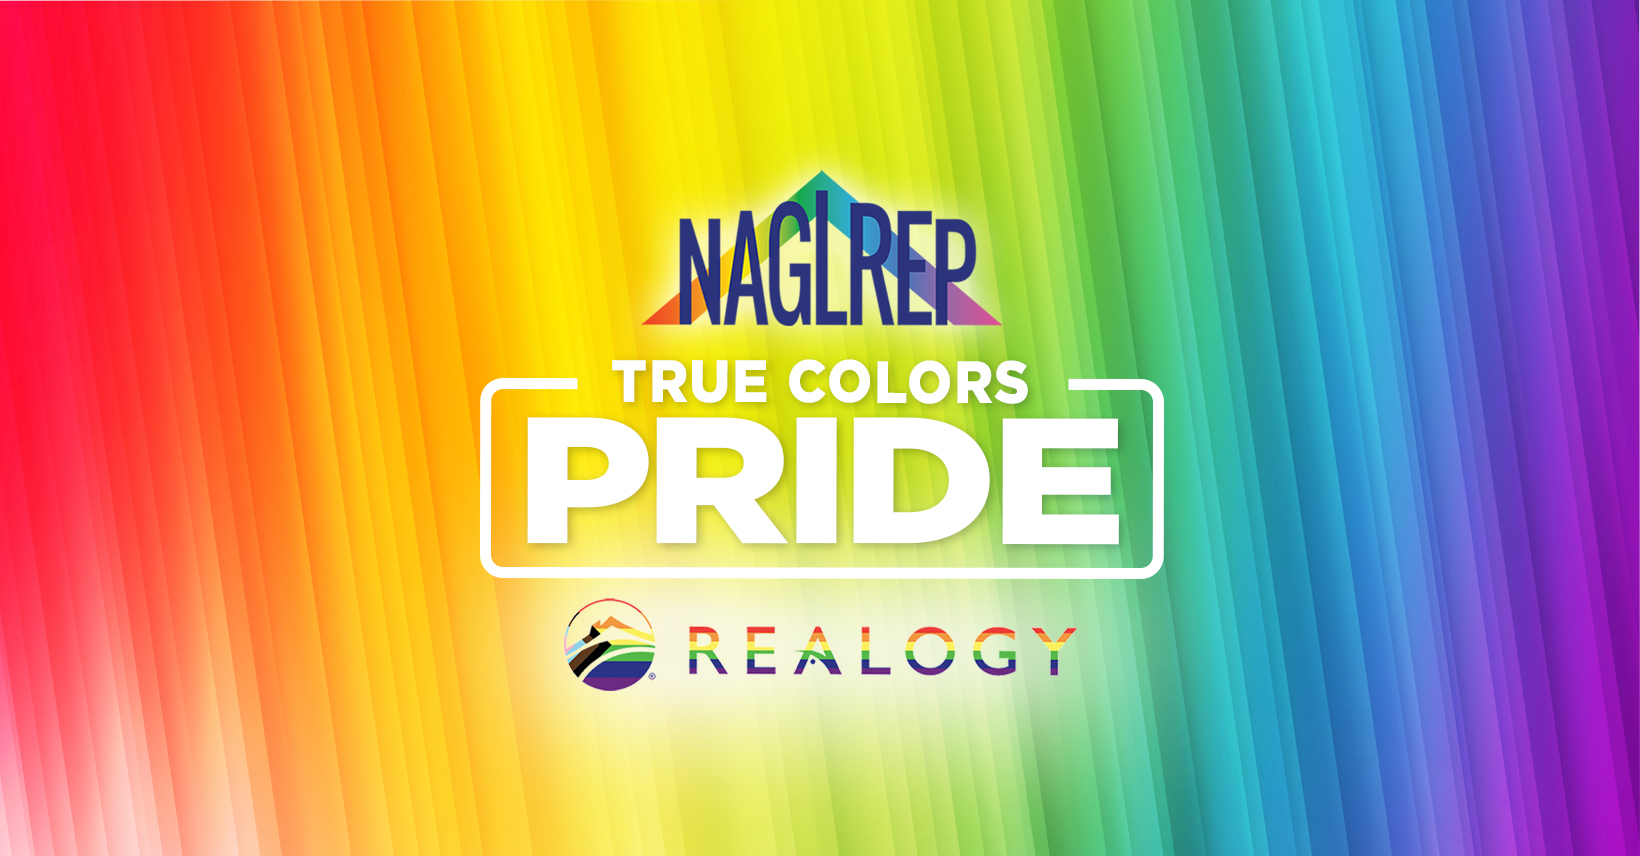 For-Facebook-NAGLREP-True Colors-Pride-Realogy